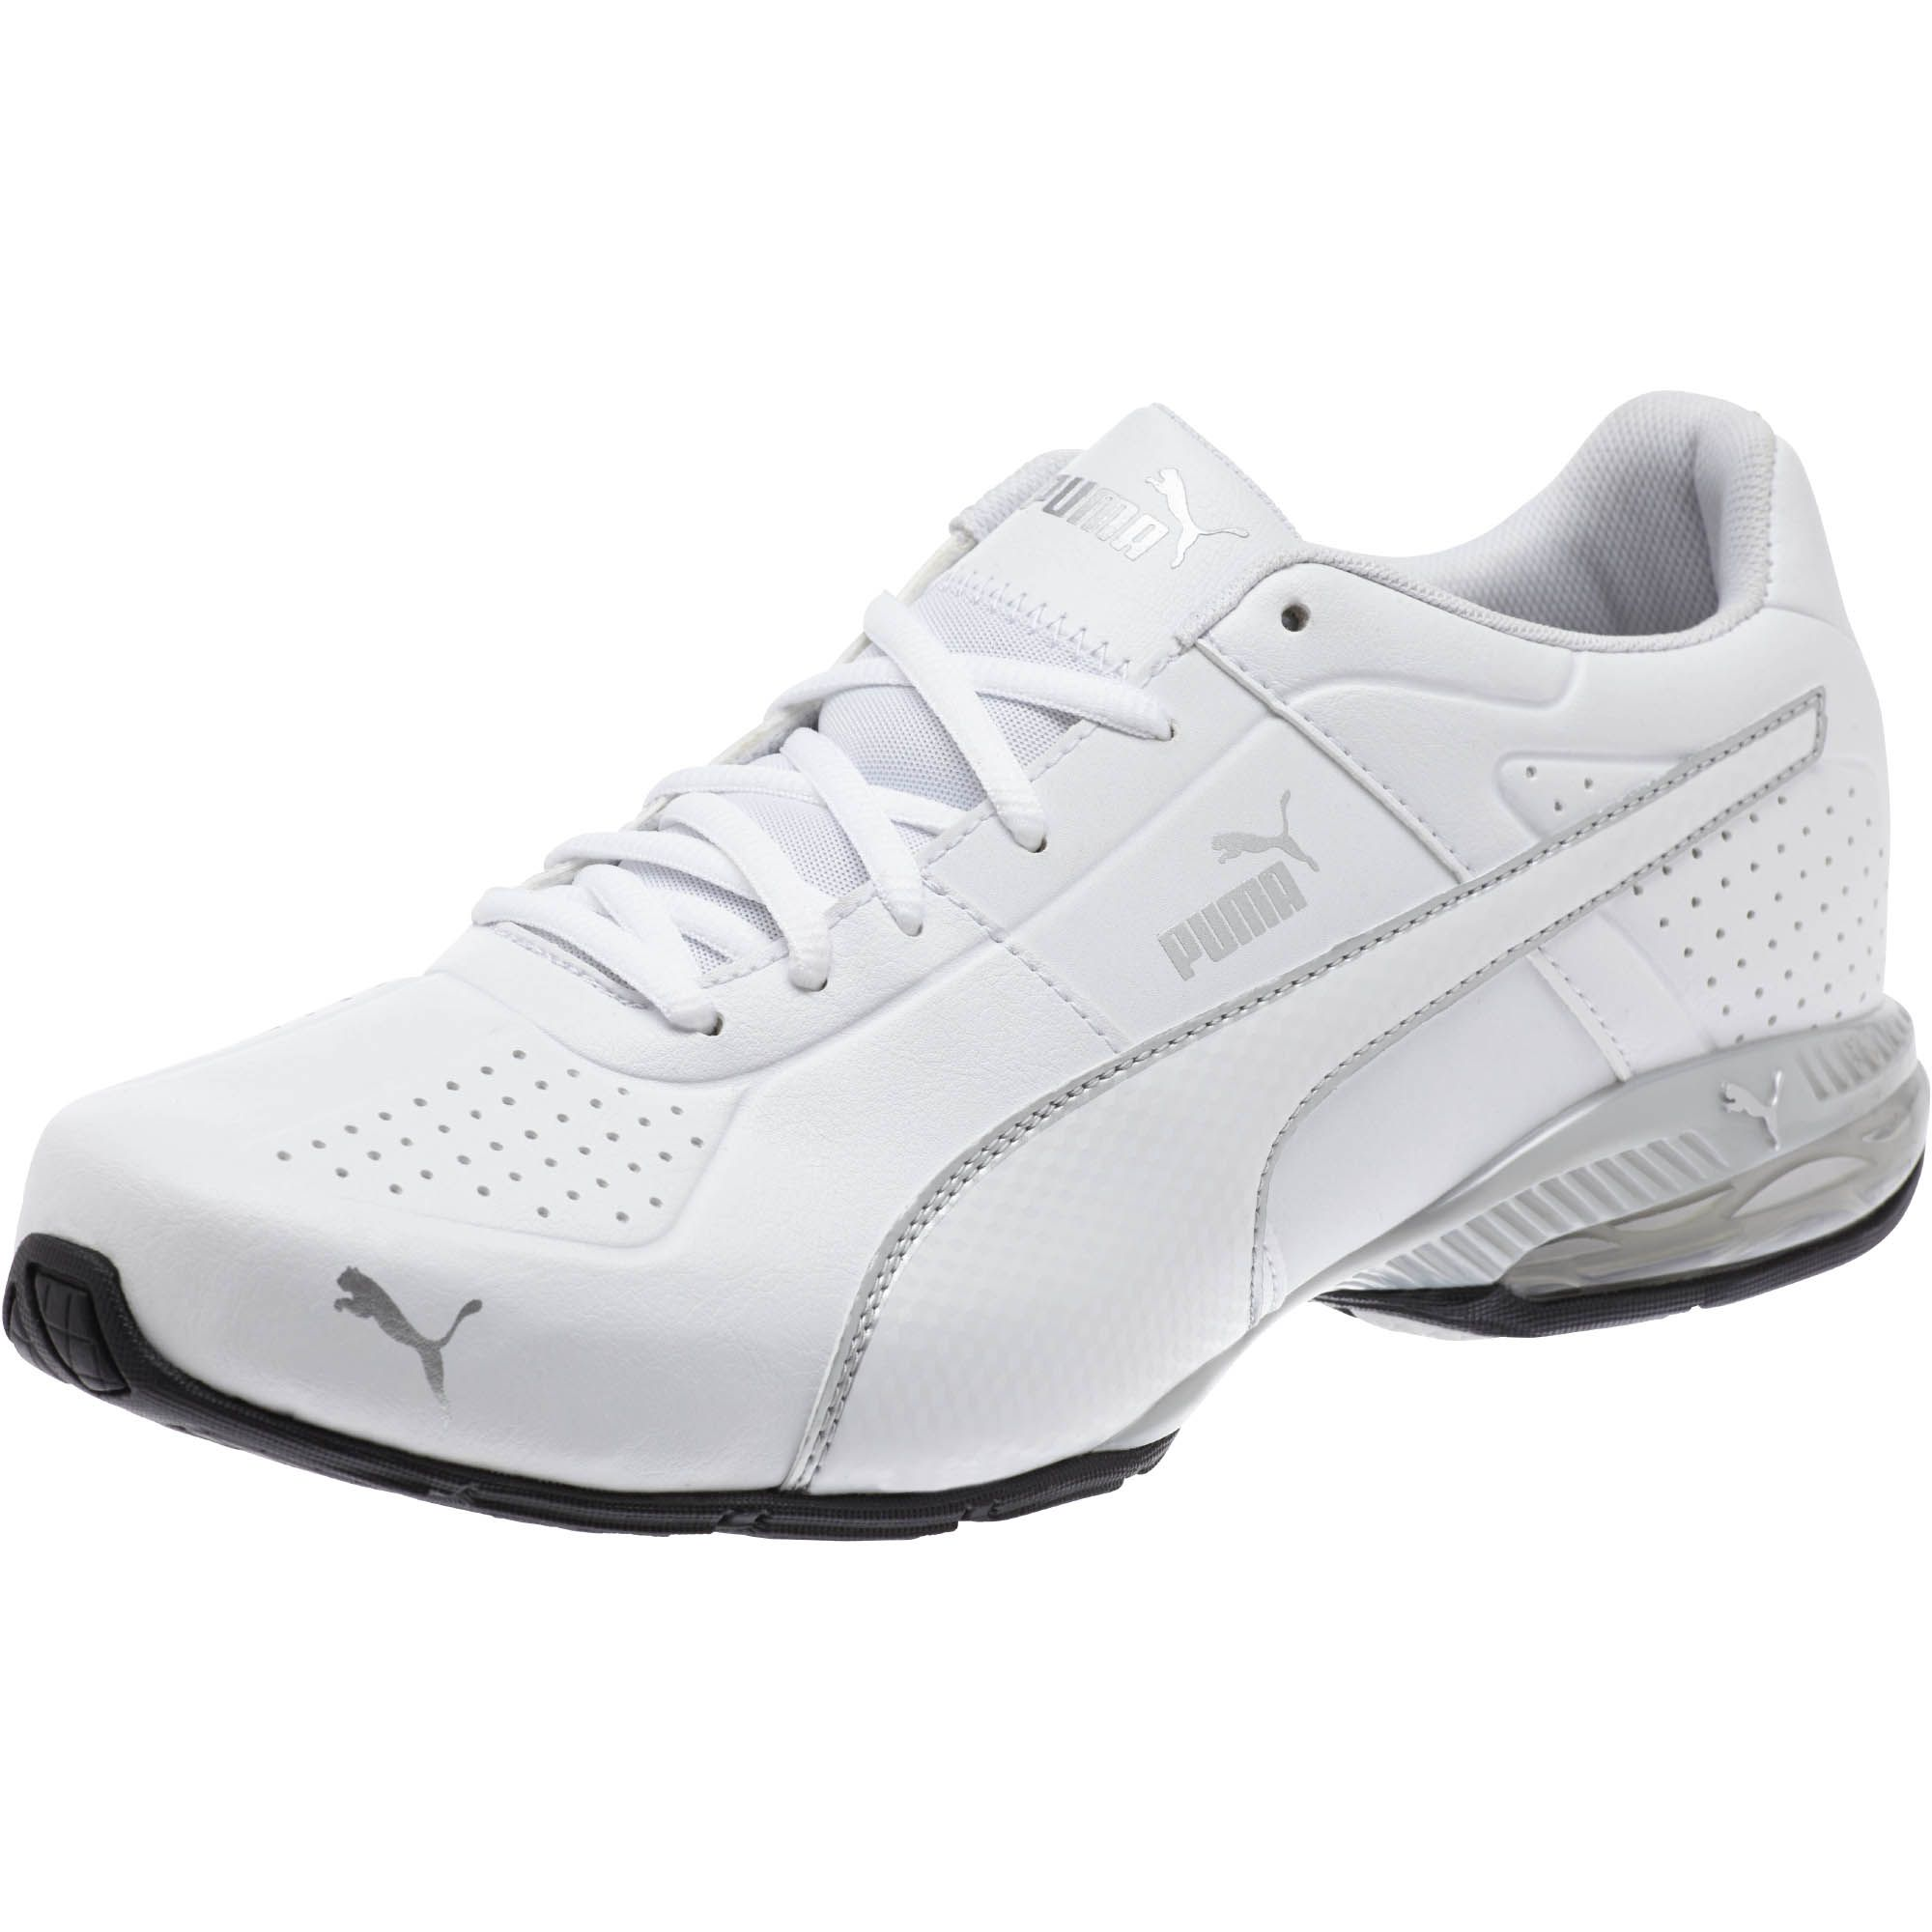 Details about PUMA Men s Cell Surin 2 Running Shoe White and Silver US Size  9 Free Shipping 9e20047d8